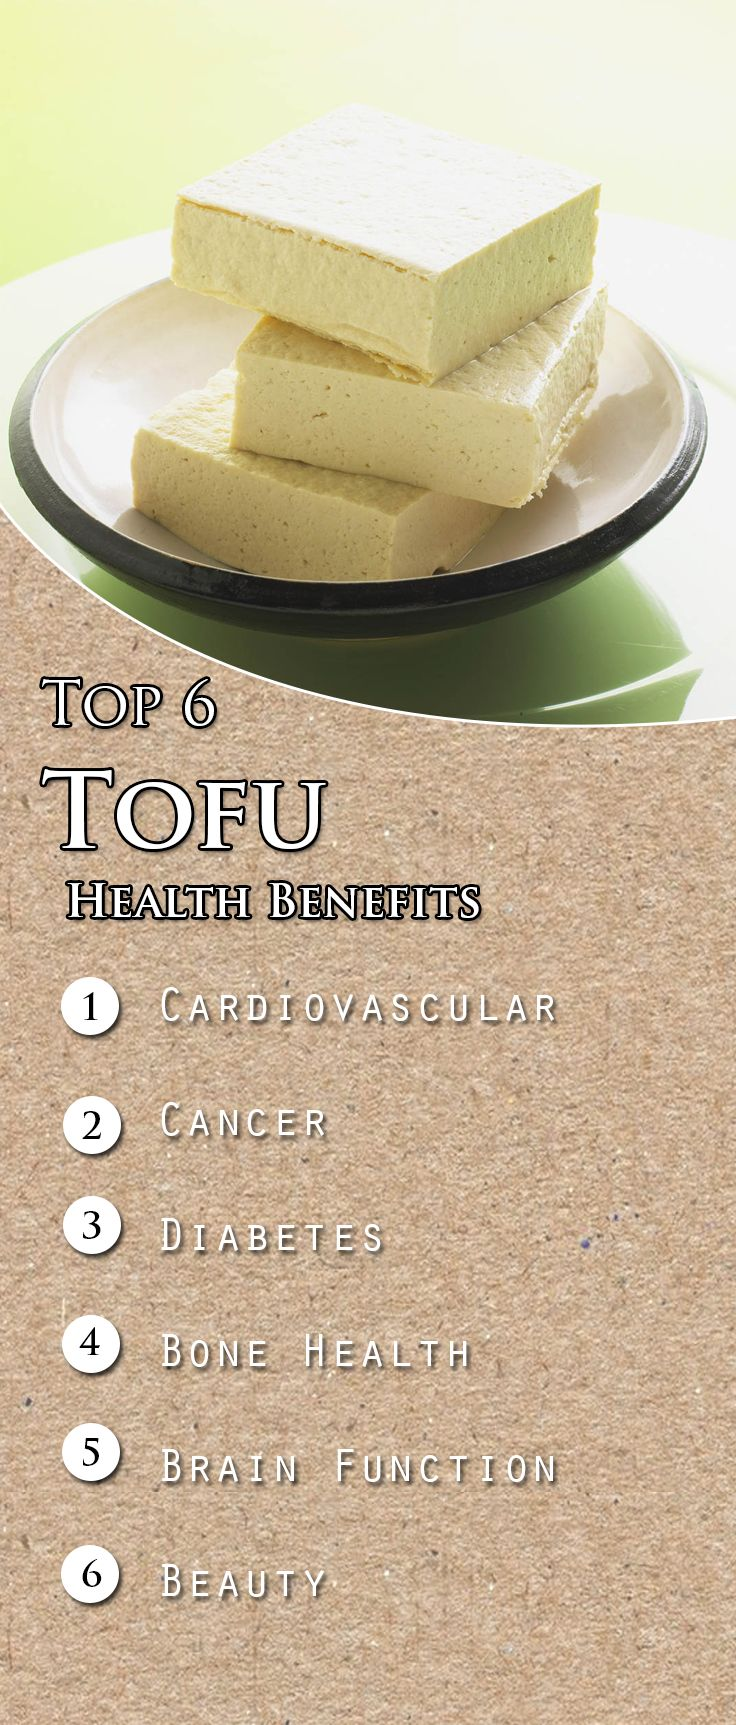 Tofu: Nutrition Facts and Health Benefits